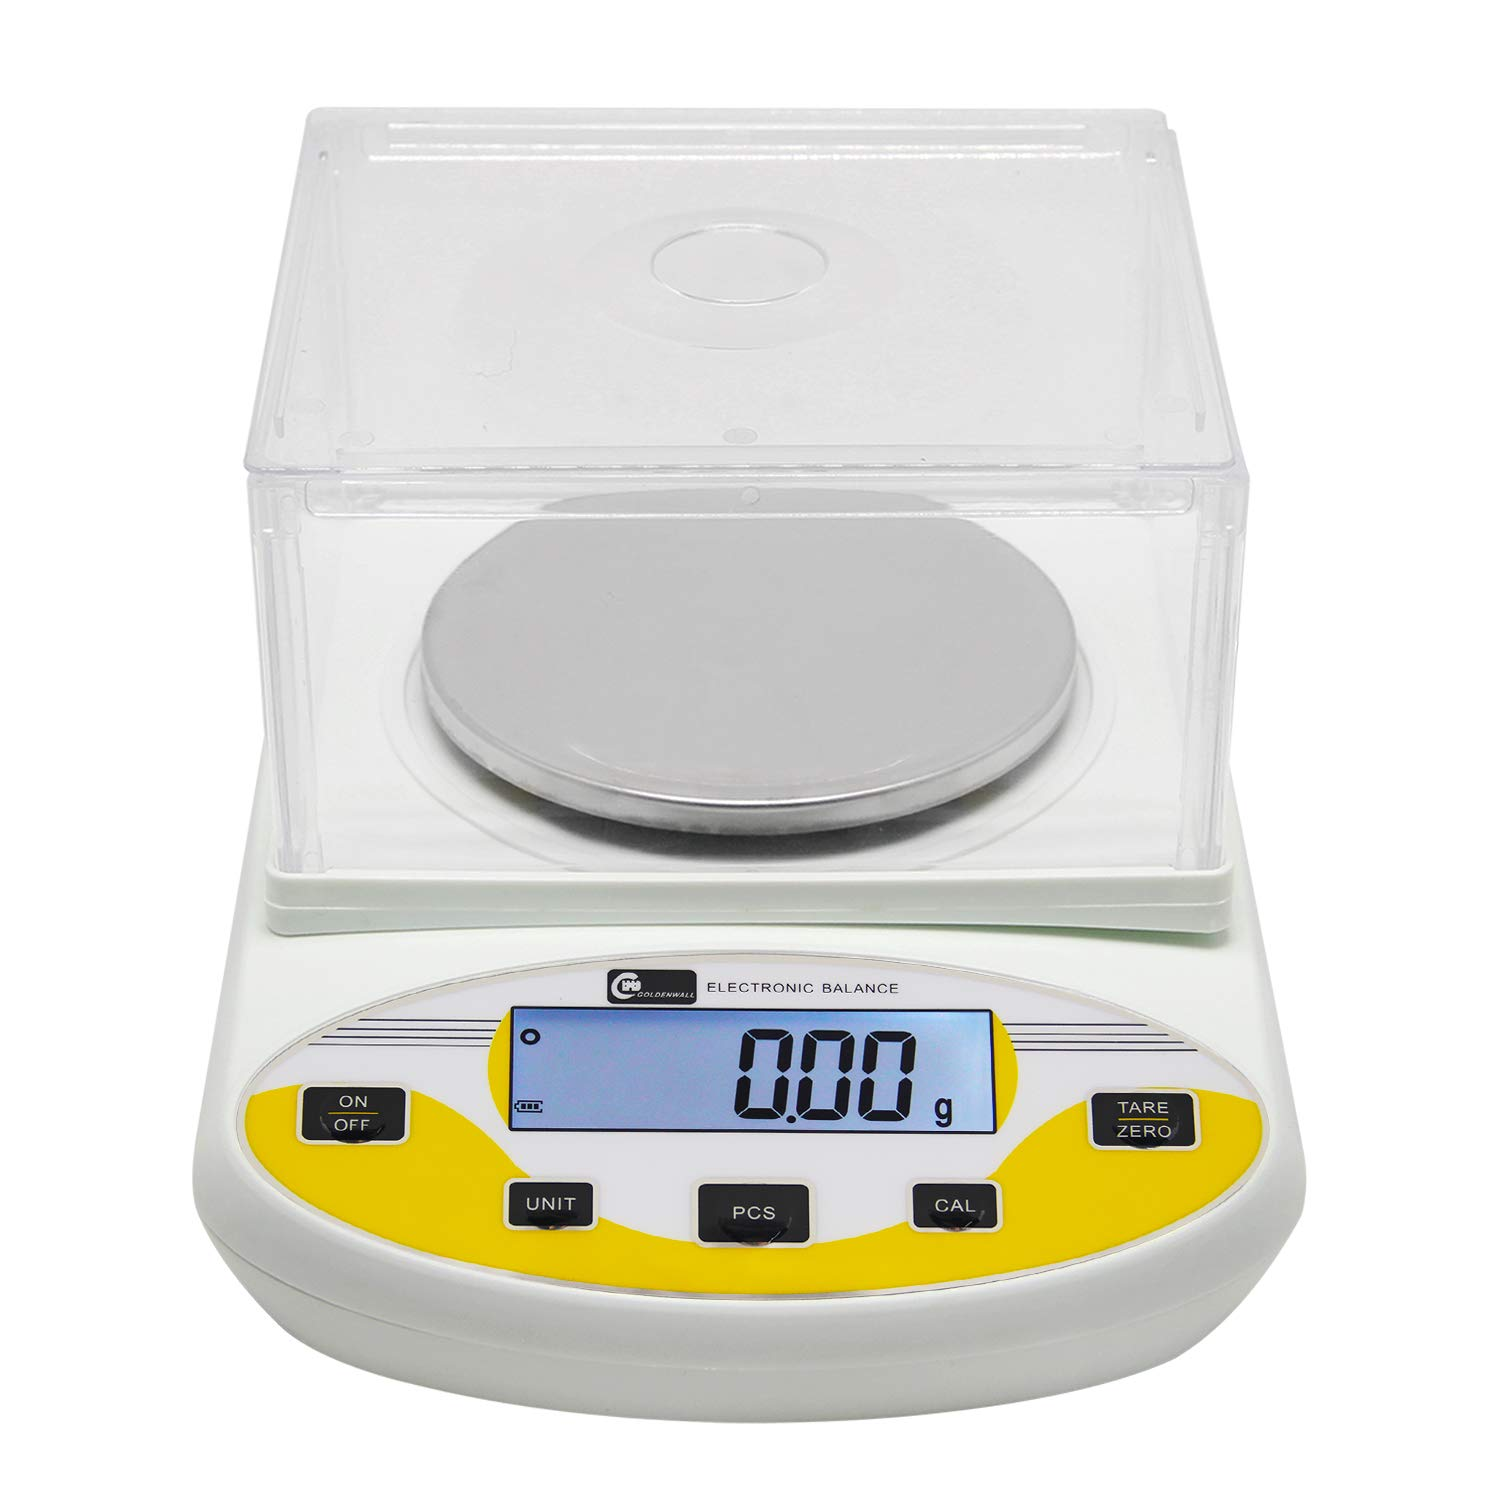 CGOLDENWALL High Precision Lab Digital Scale Analytical Electronic Balance Laboratory Lab Scale Precision Jewelry Scales Kitchen Precision Weighing Electronic Scales 0.01g Calibrated (3000g, 0.01g)